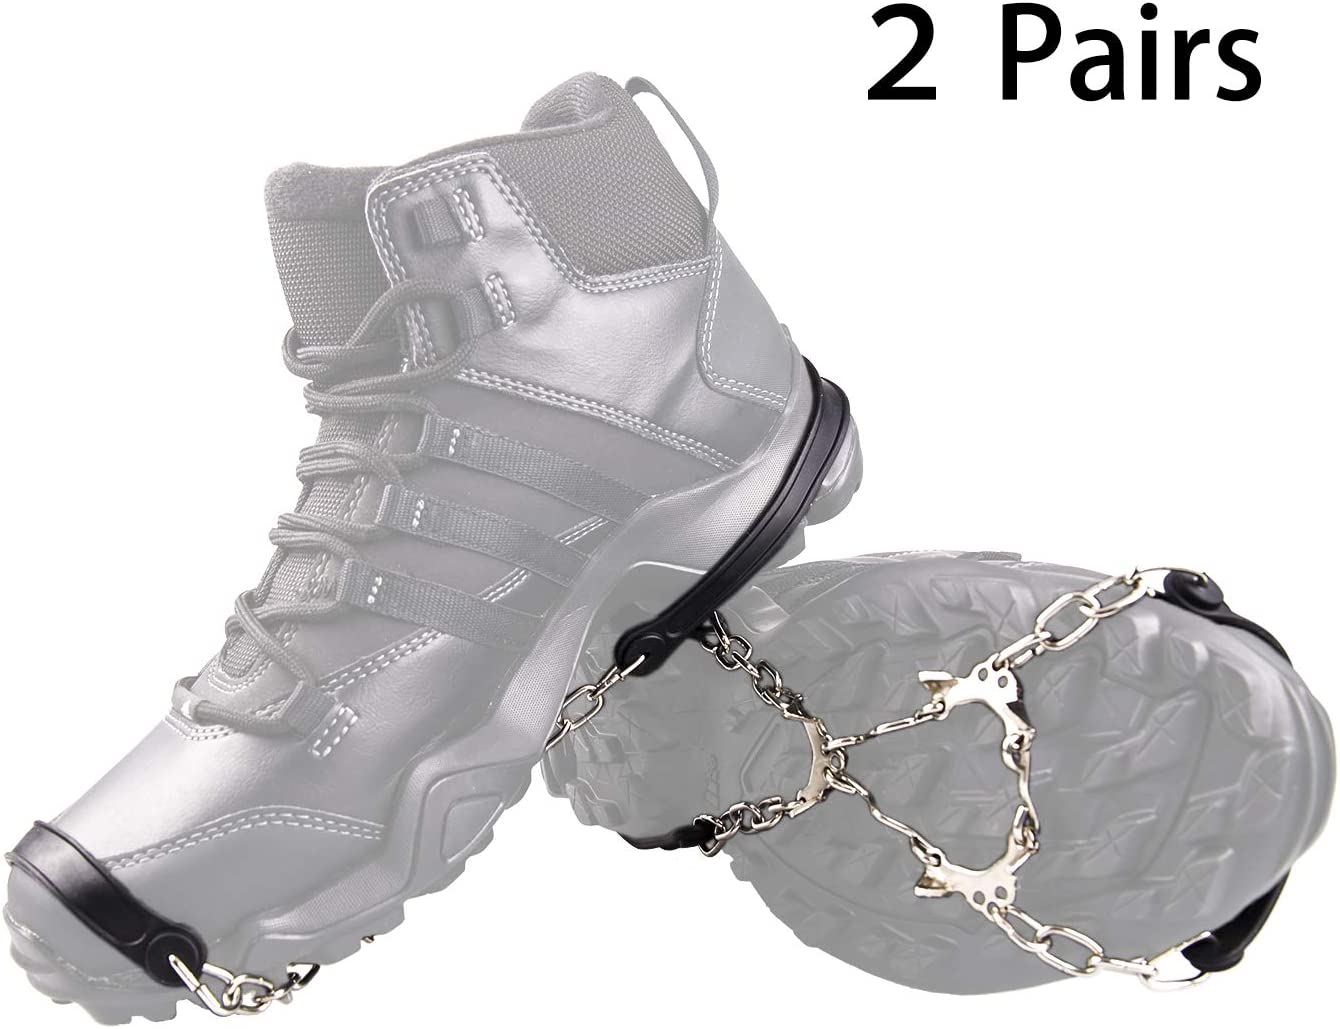 2 Pairs FANBX F Walking Traction Cleats 6 Point Spikes Cleats Traction Cleats Slip-on Stretch Footwear Crampons for Walking on Snow and Ice